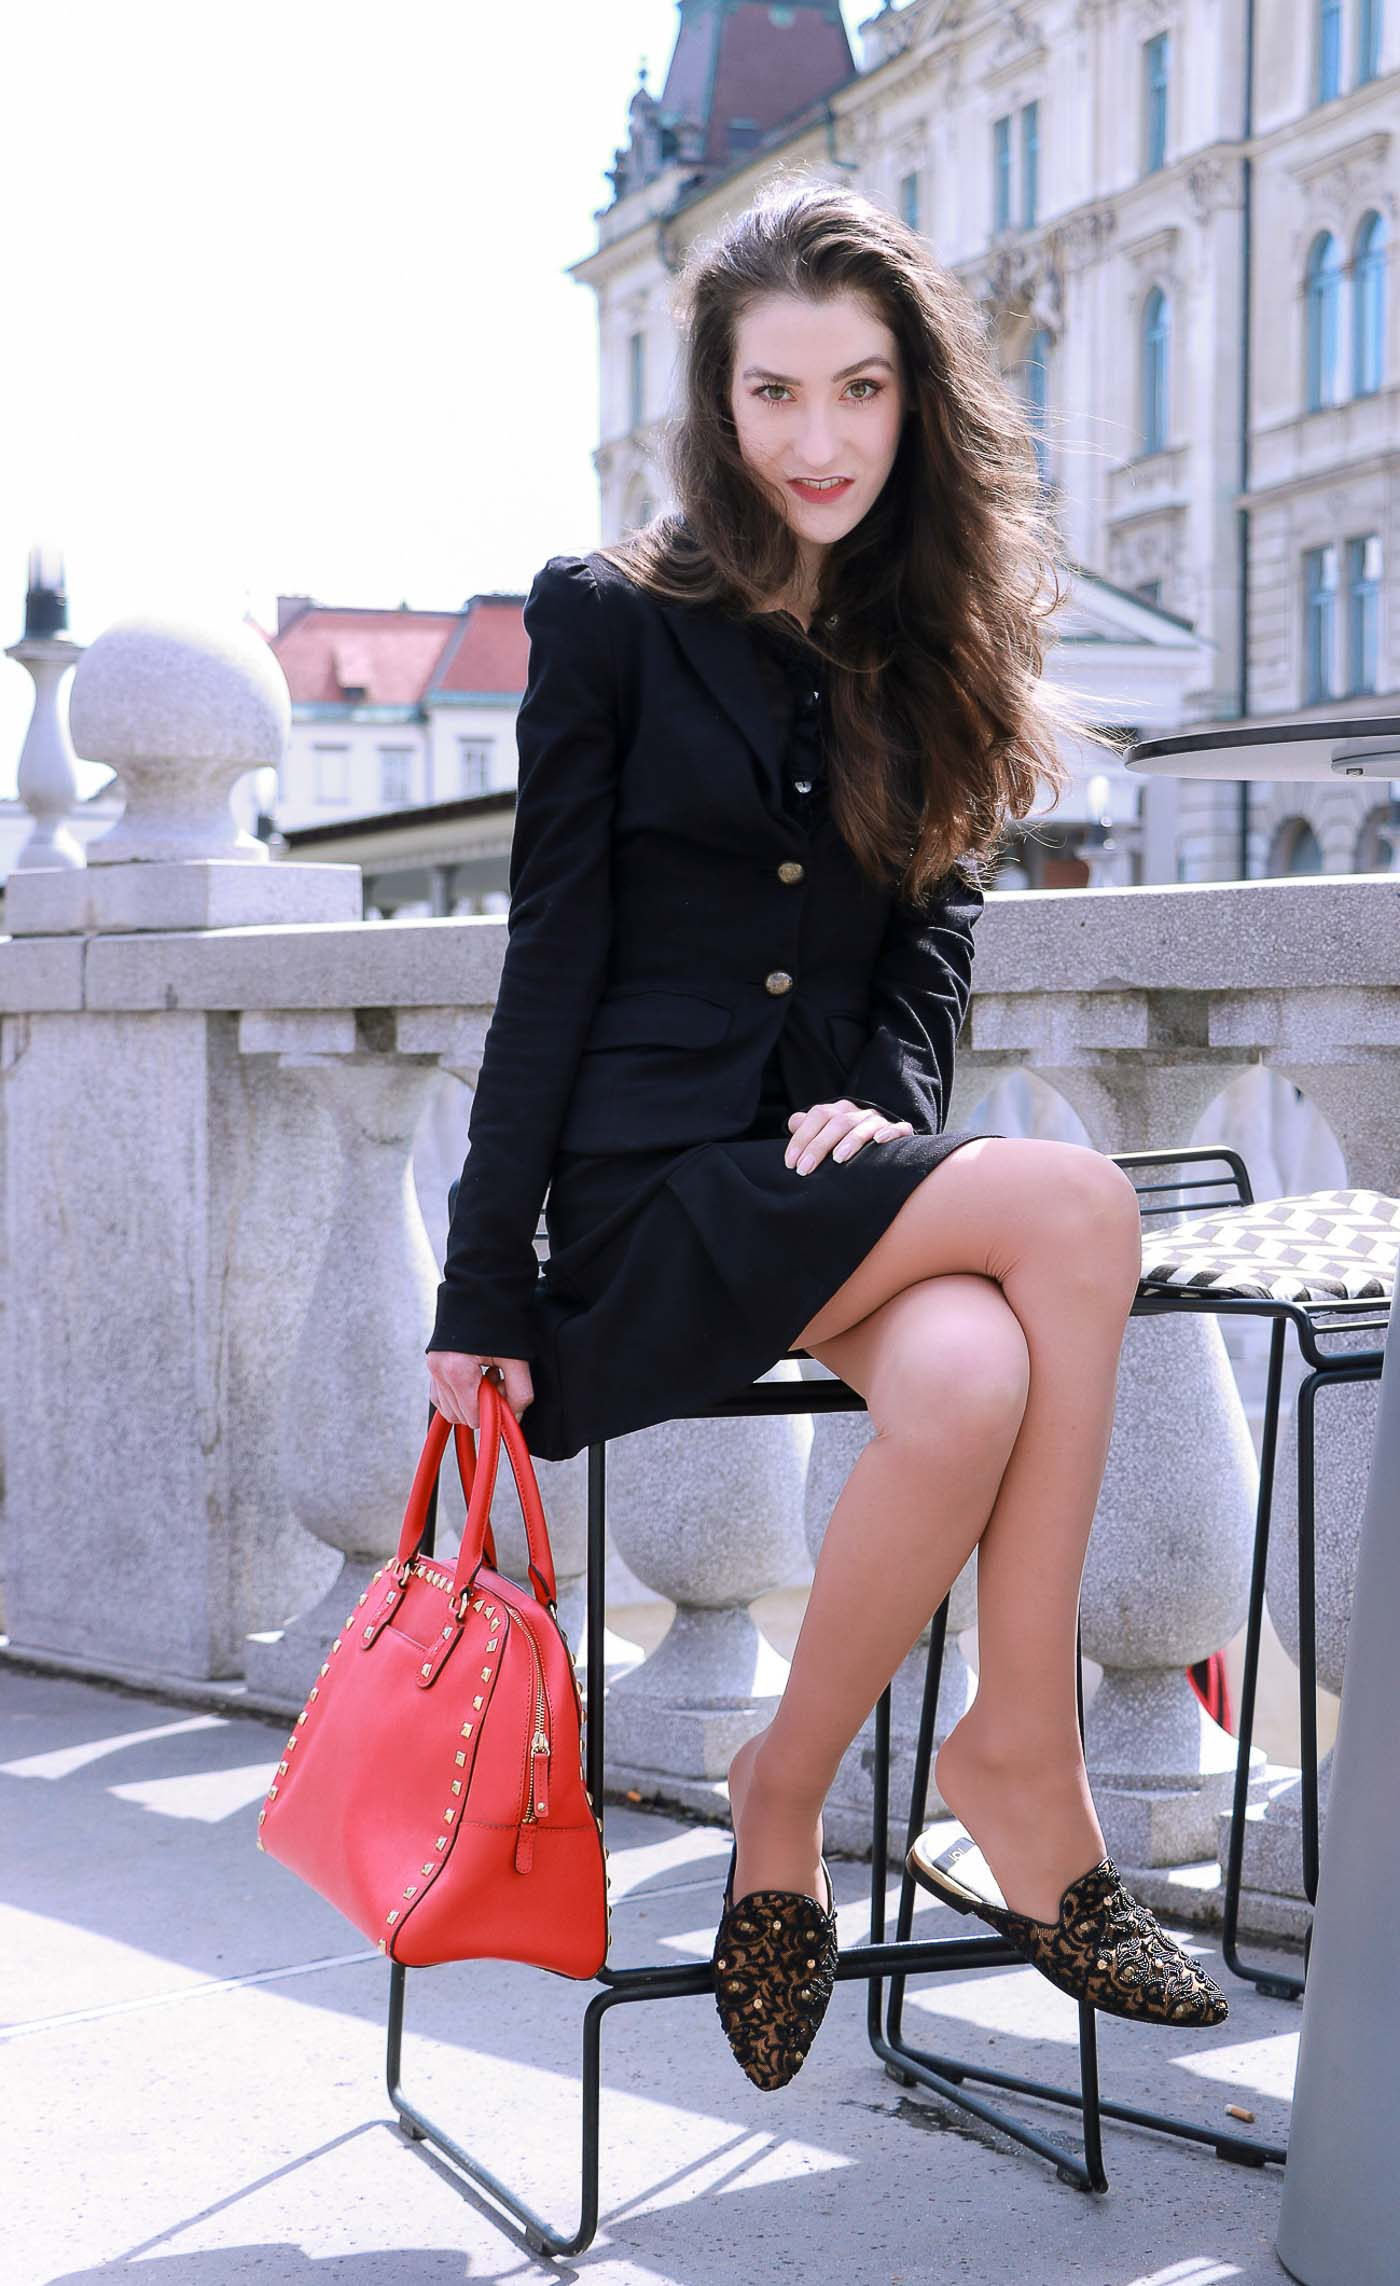 Fashion Blogger Veronika Lipar of Brunette from Wall Street brunching with her girl friends in the town dressed in a chic black skirt suit